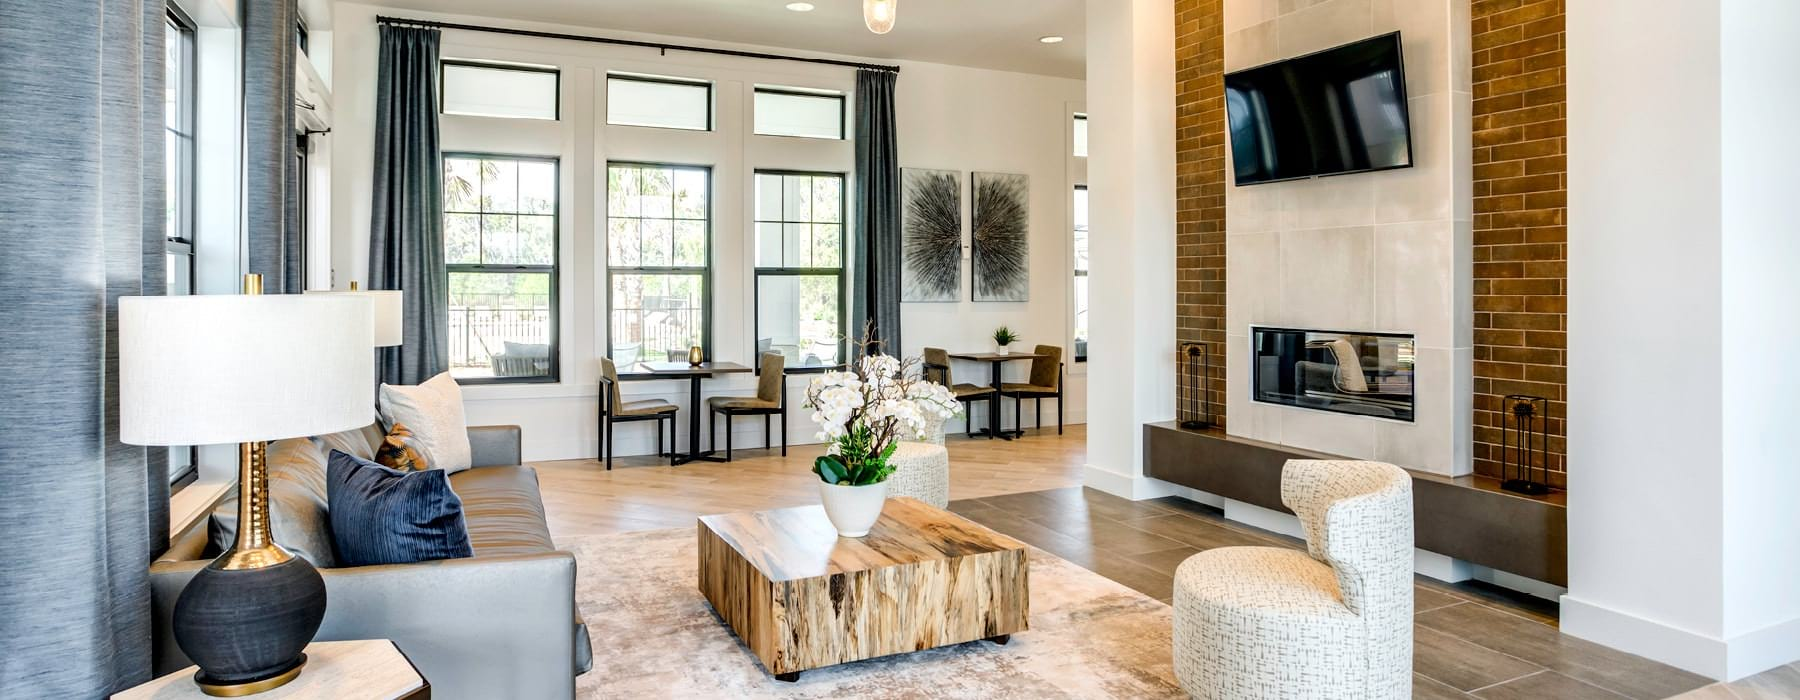 large windows brighten resident clubhouse